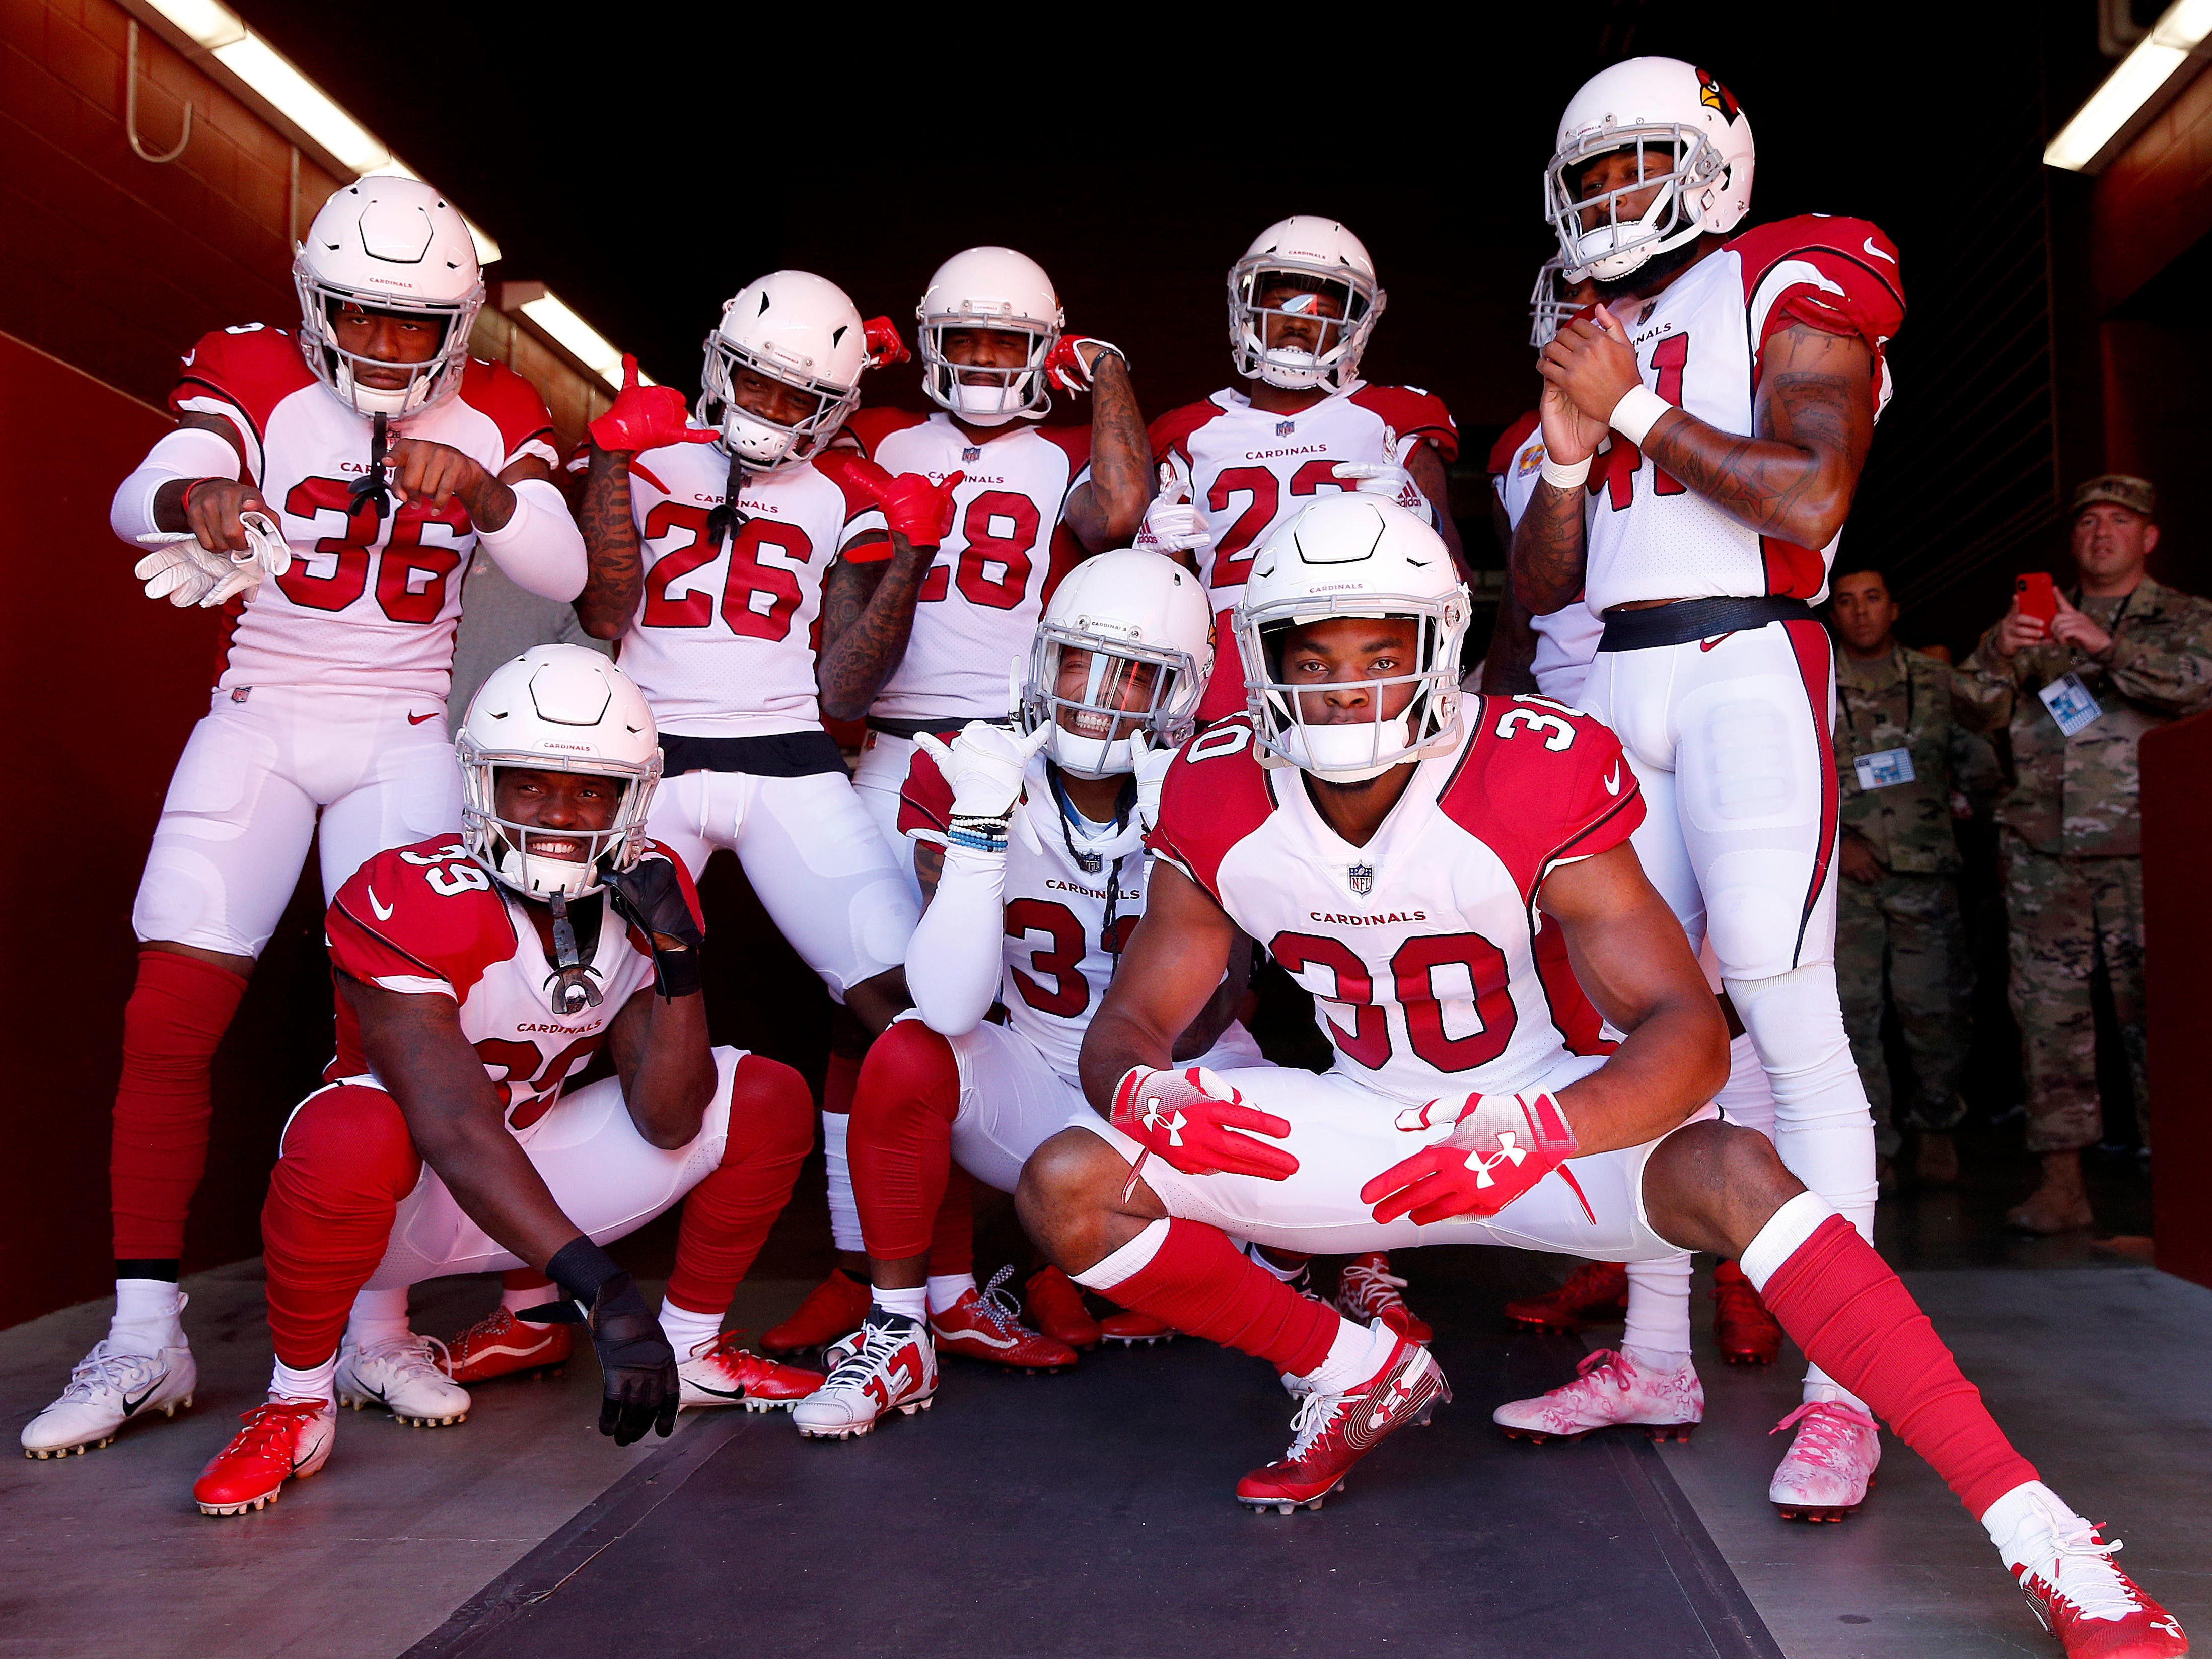 Oct 7, 2018; Santa Clara, CA, USA; Arizona Cardinals defensive back Rudy Ford (30) poses for a photo with teammates before the start of the game against the San Francisco 49ers at Levi's Stadium.